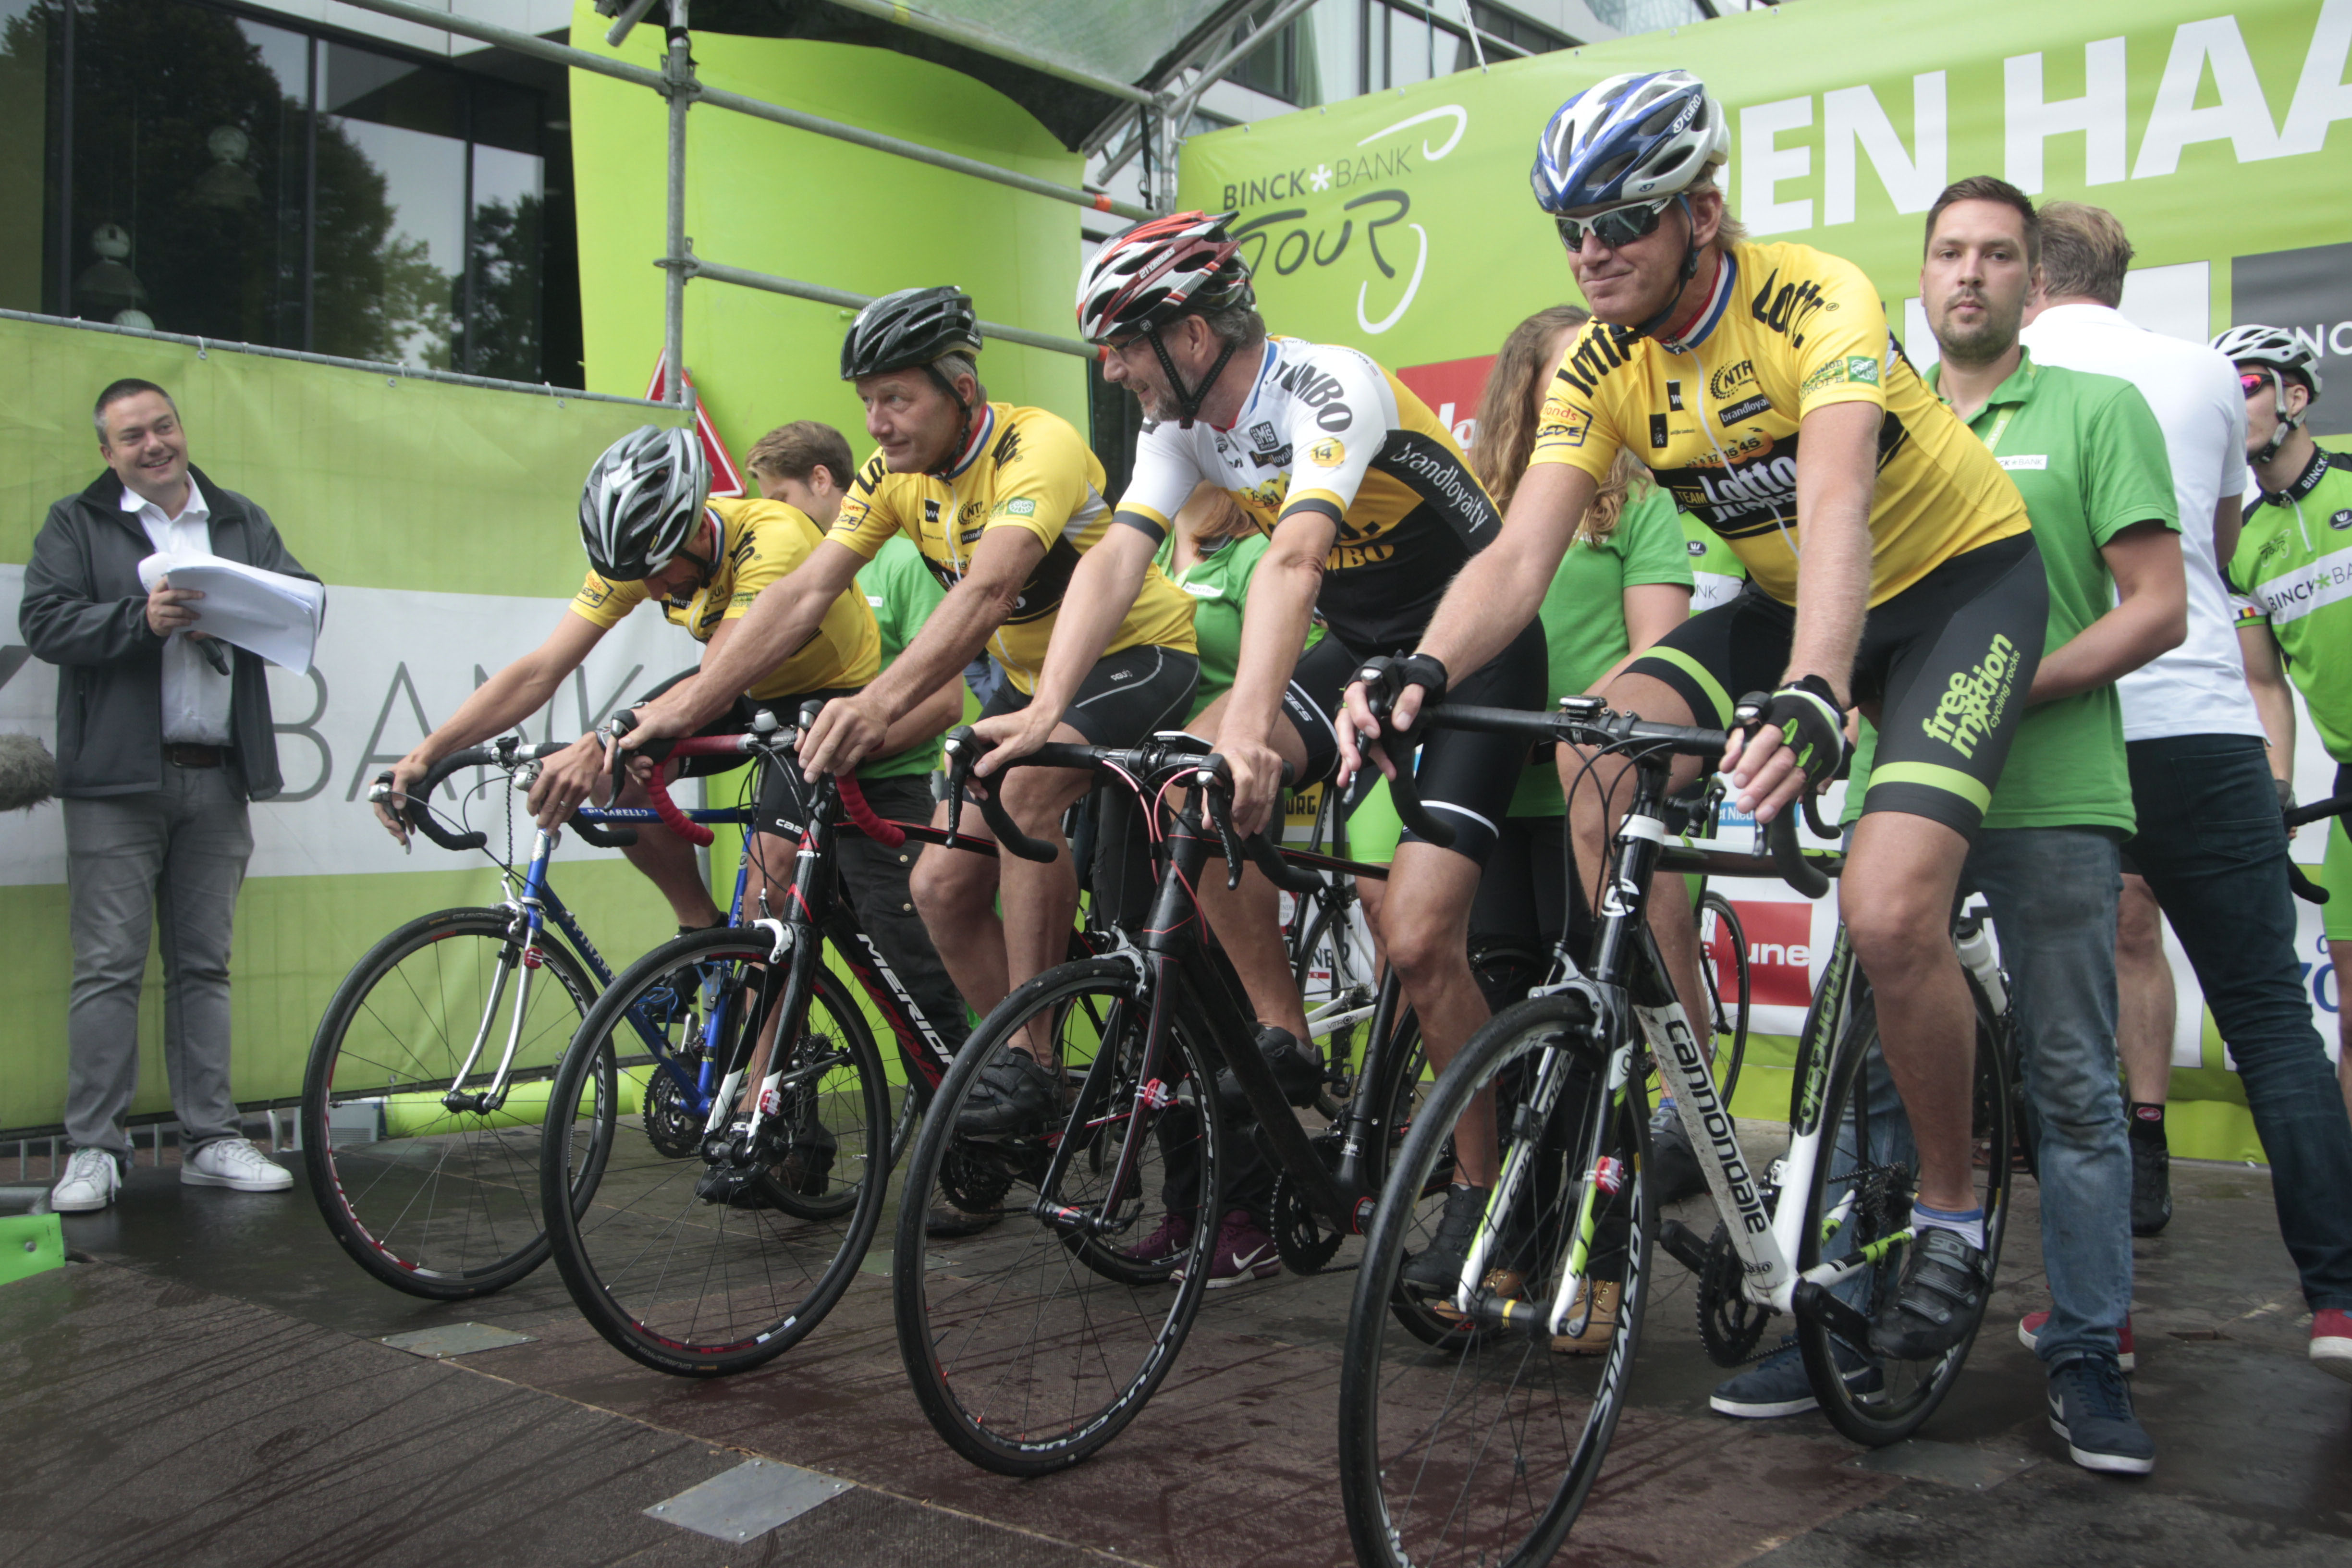 BinckBank Tour: Teamtijdrit